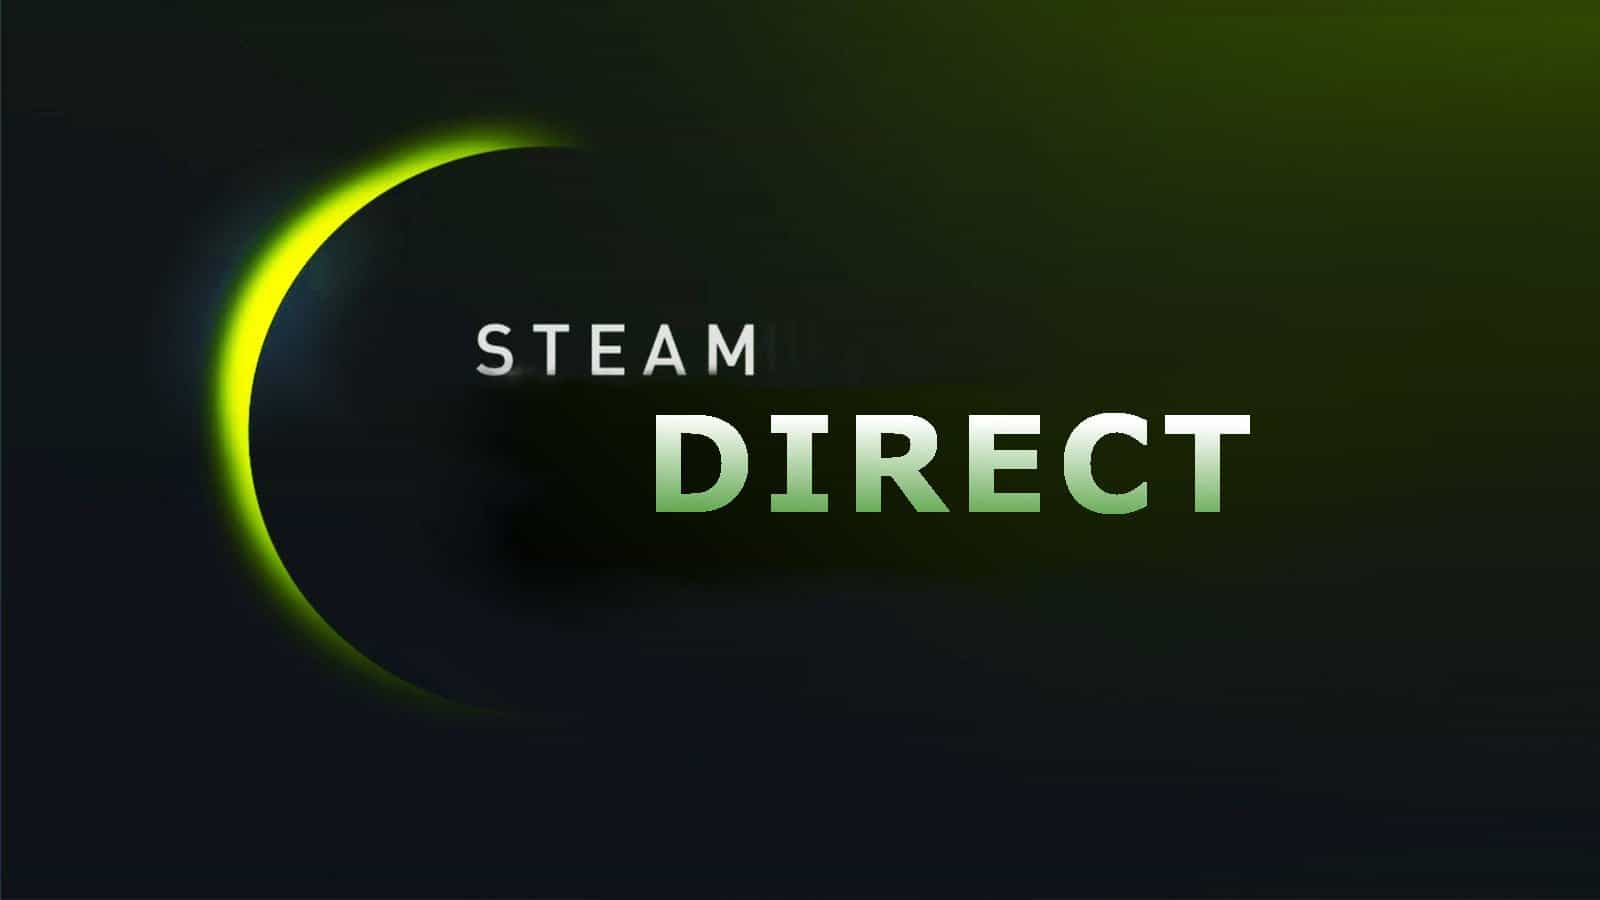 Steam Direct launches 13 June, Greenlight closure process explained